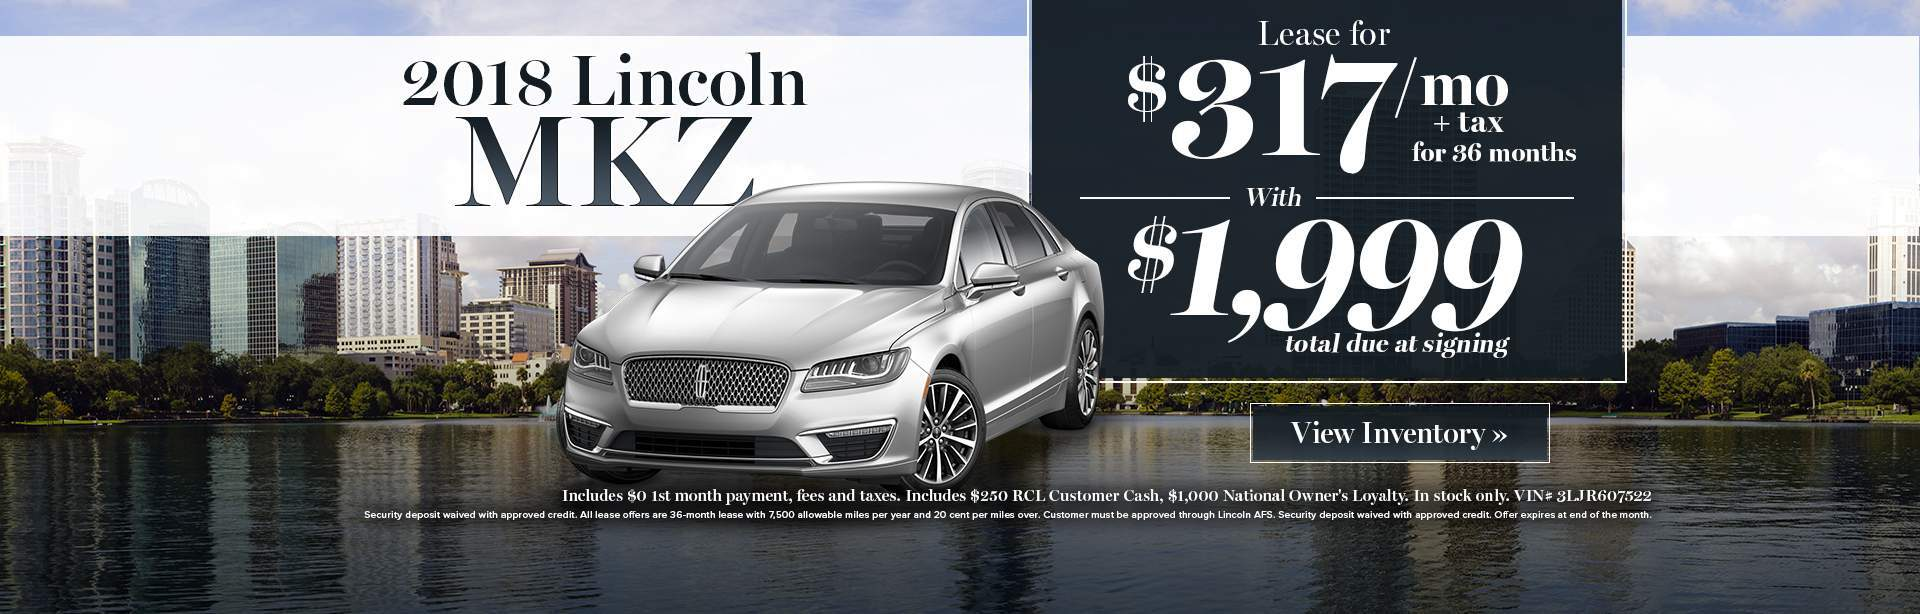 2017 Lincoln MKZ lease special